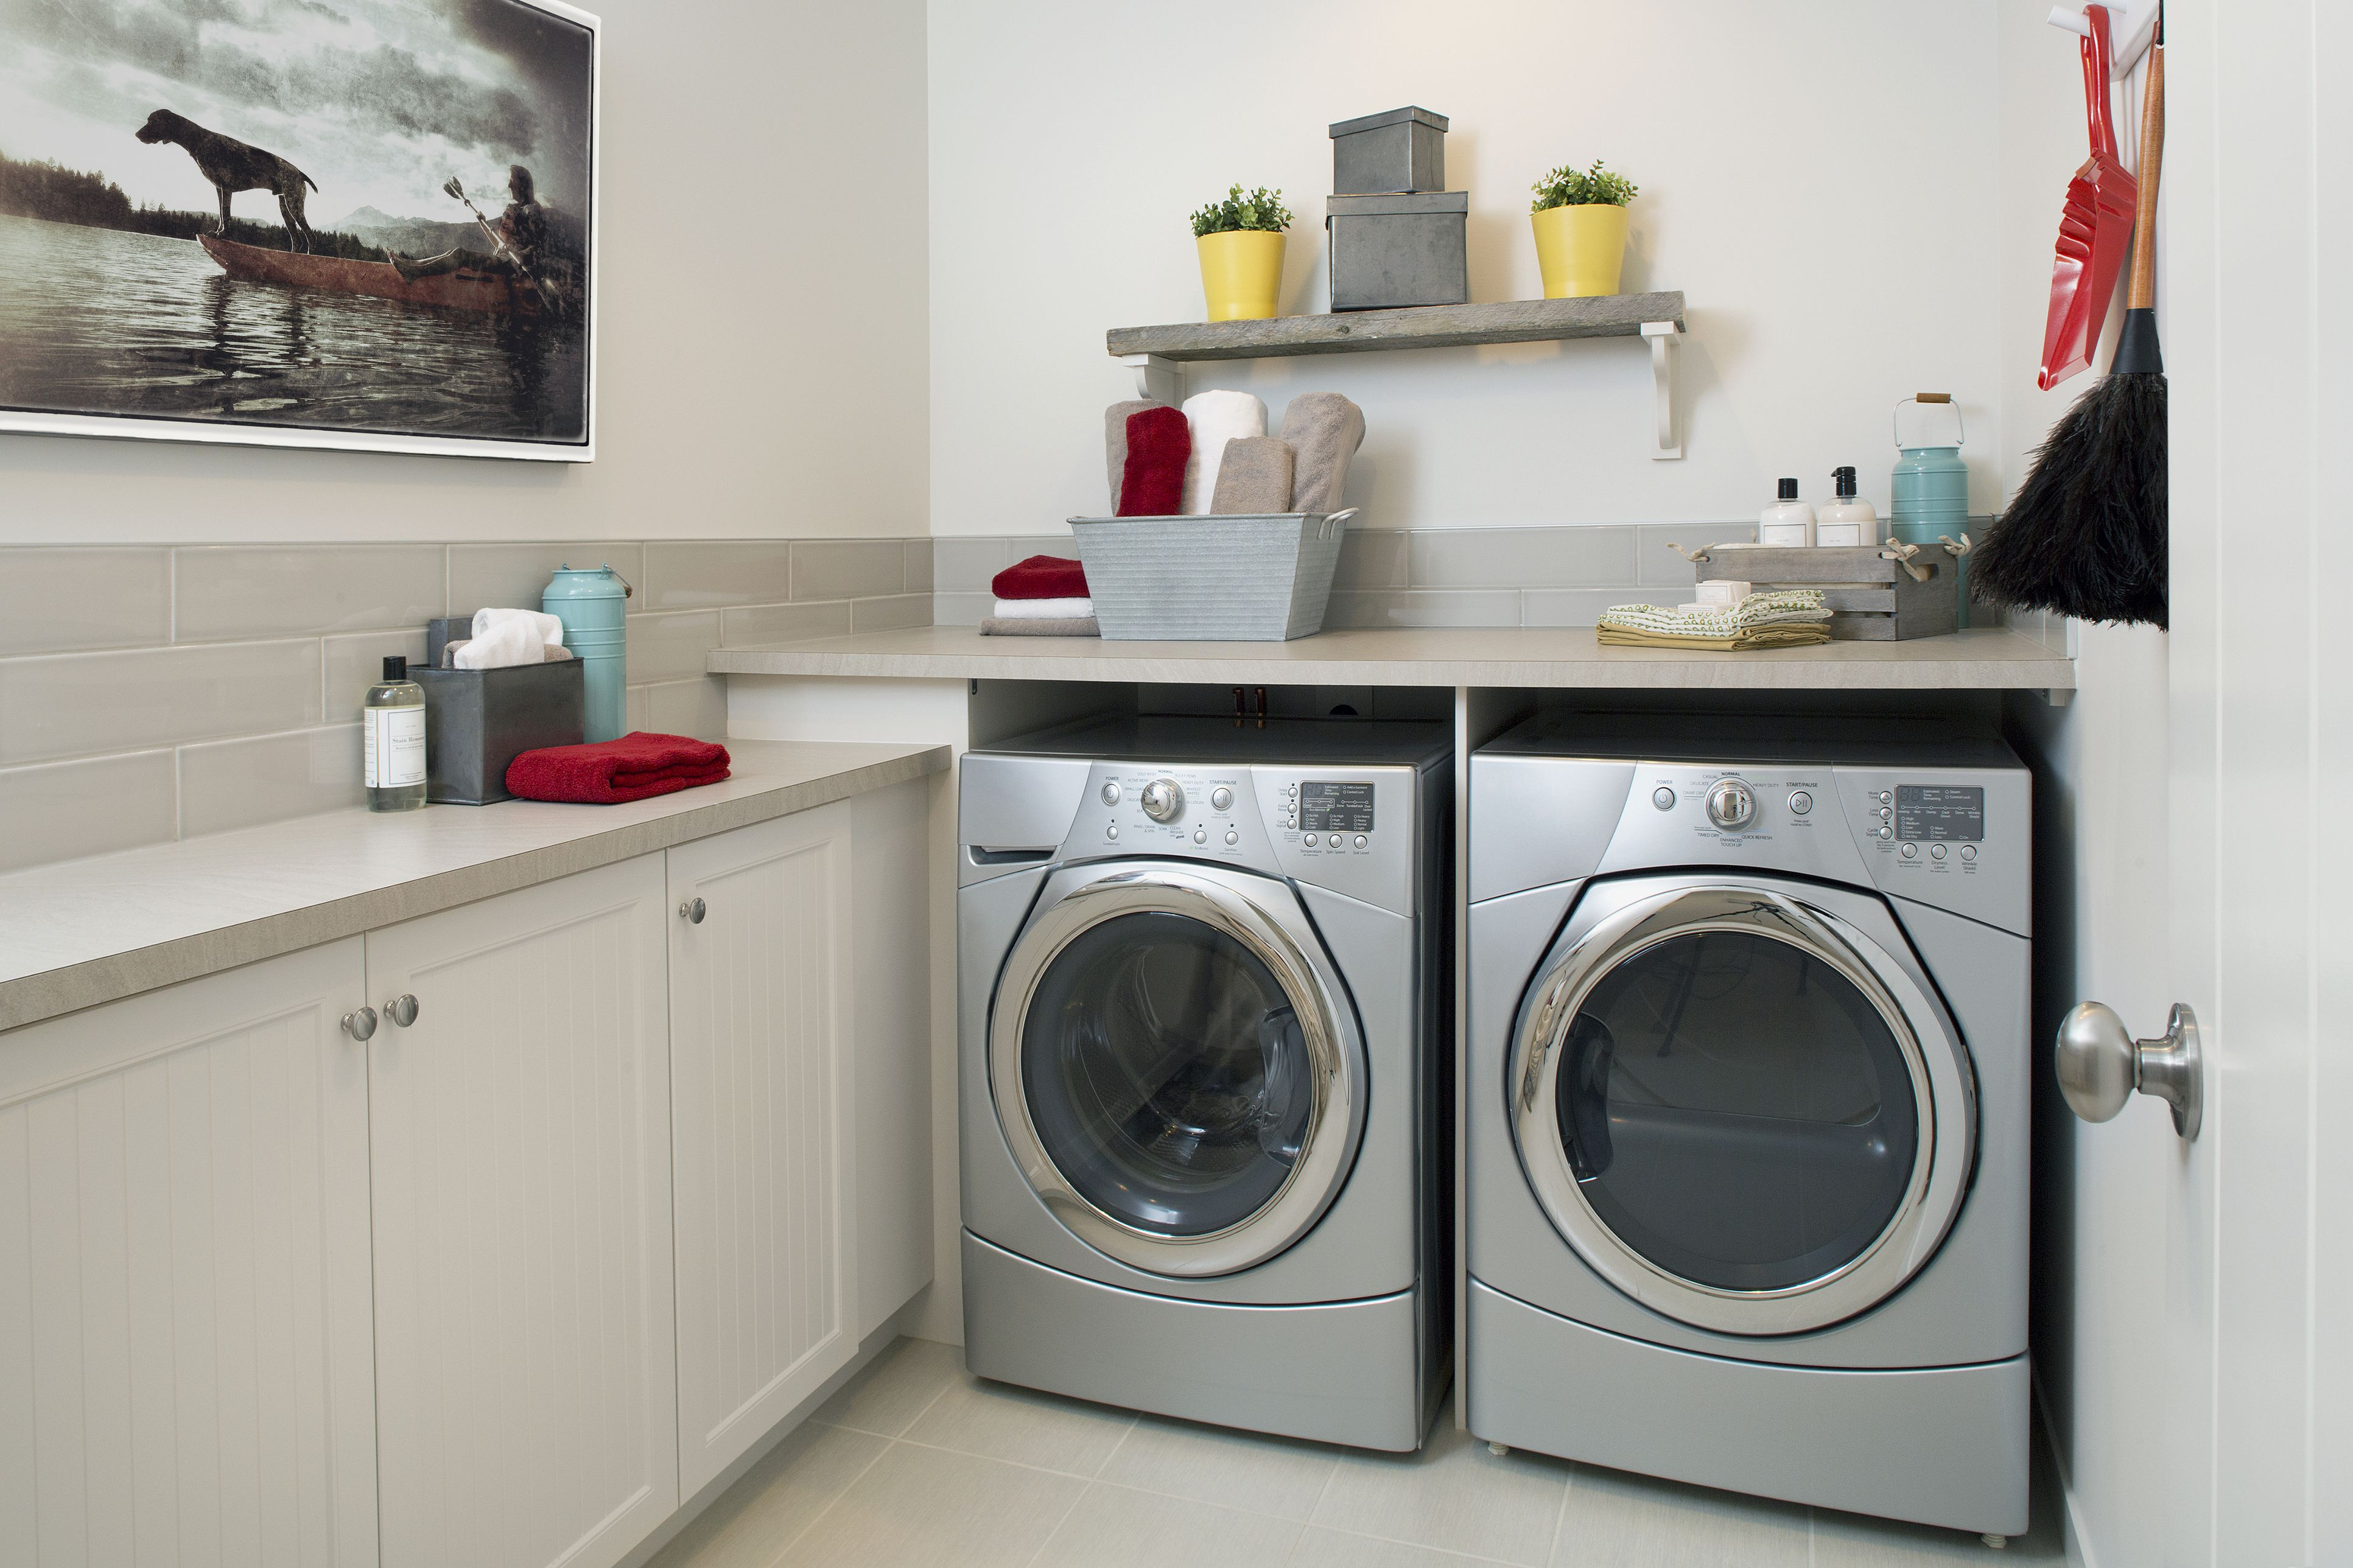 The 7 Best Washing Machines to Buy in 2018